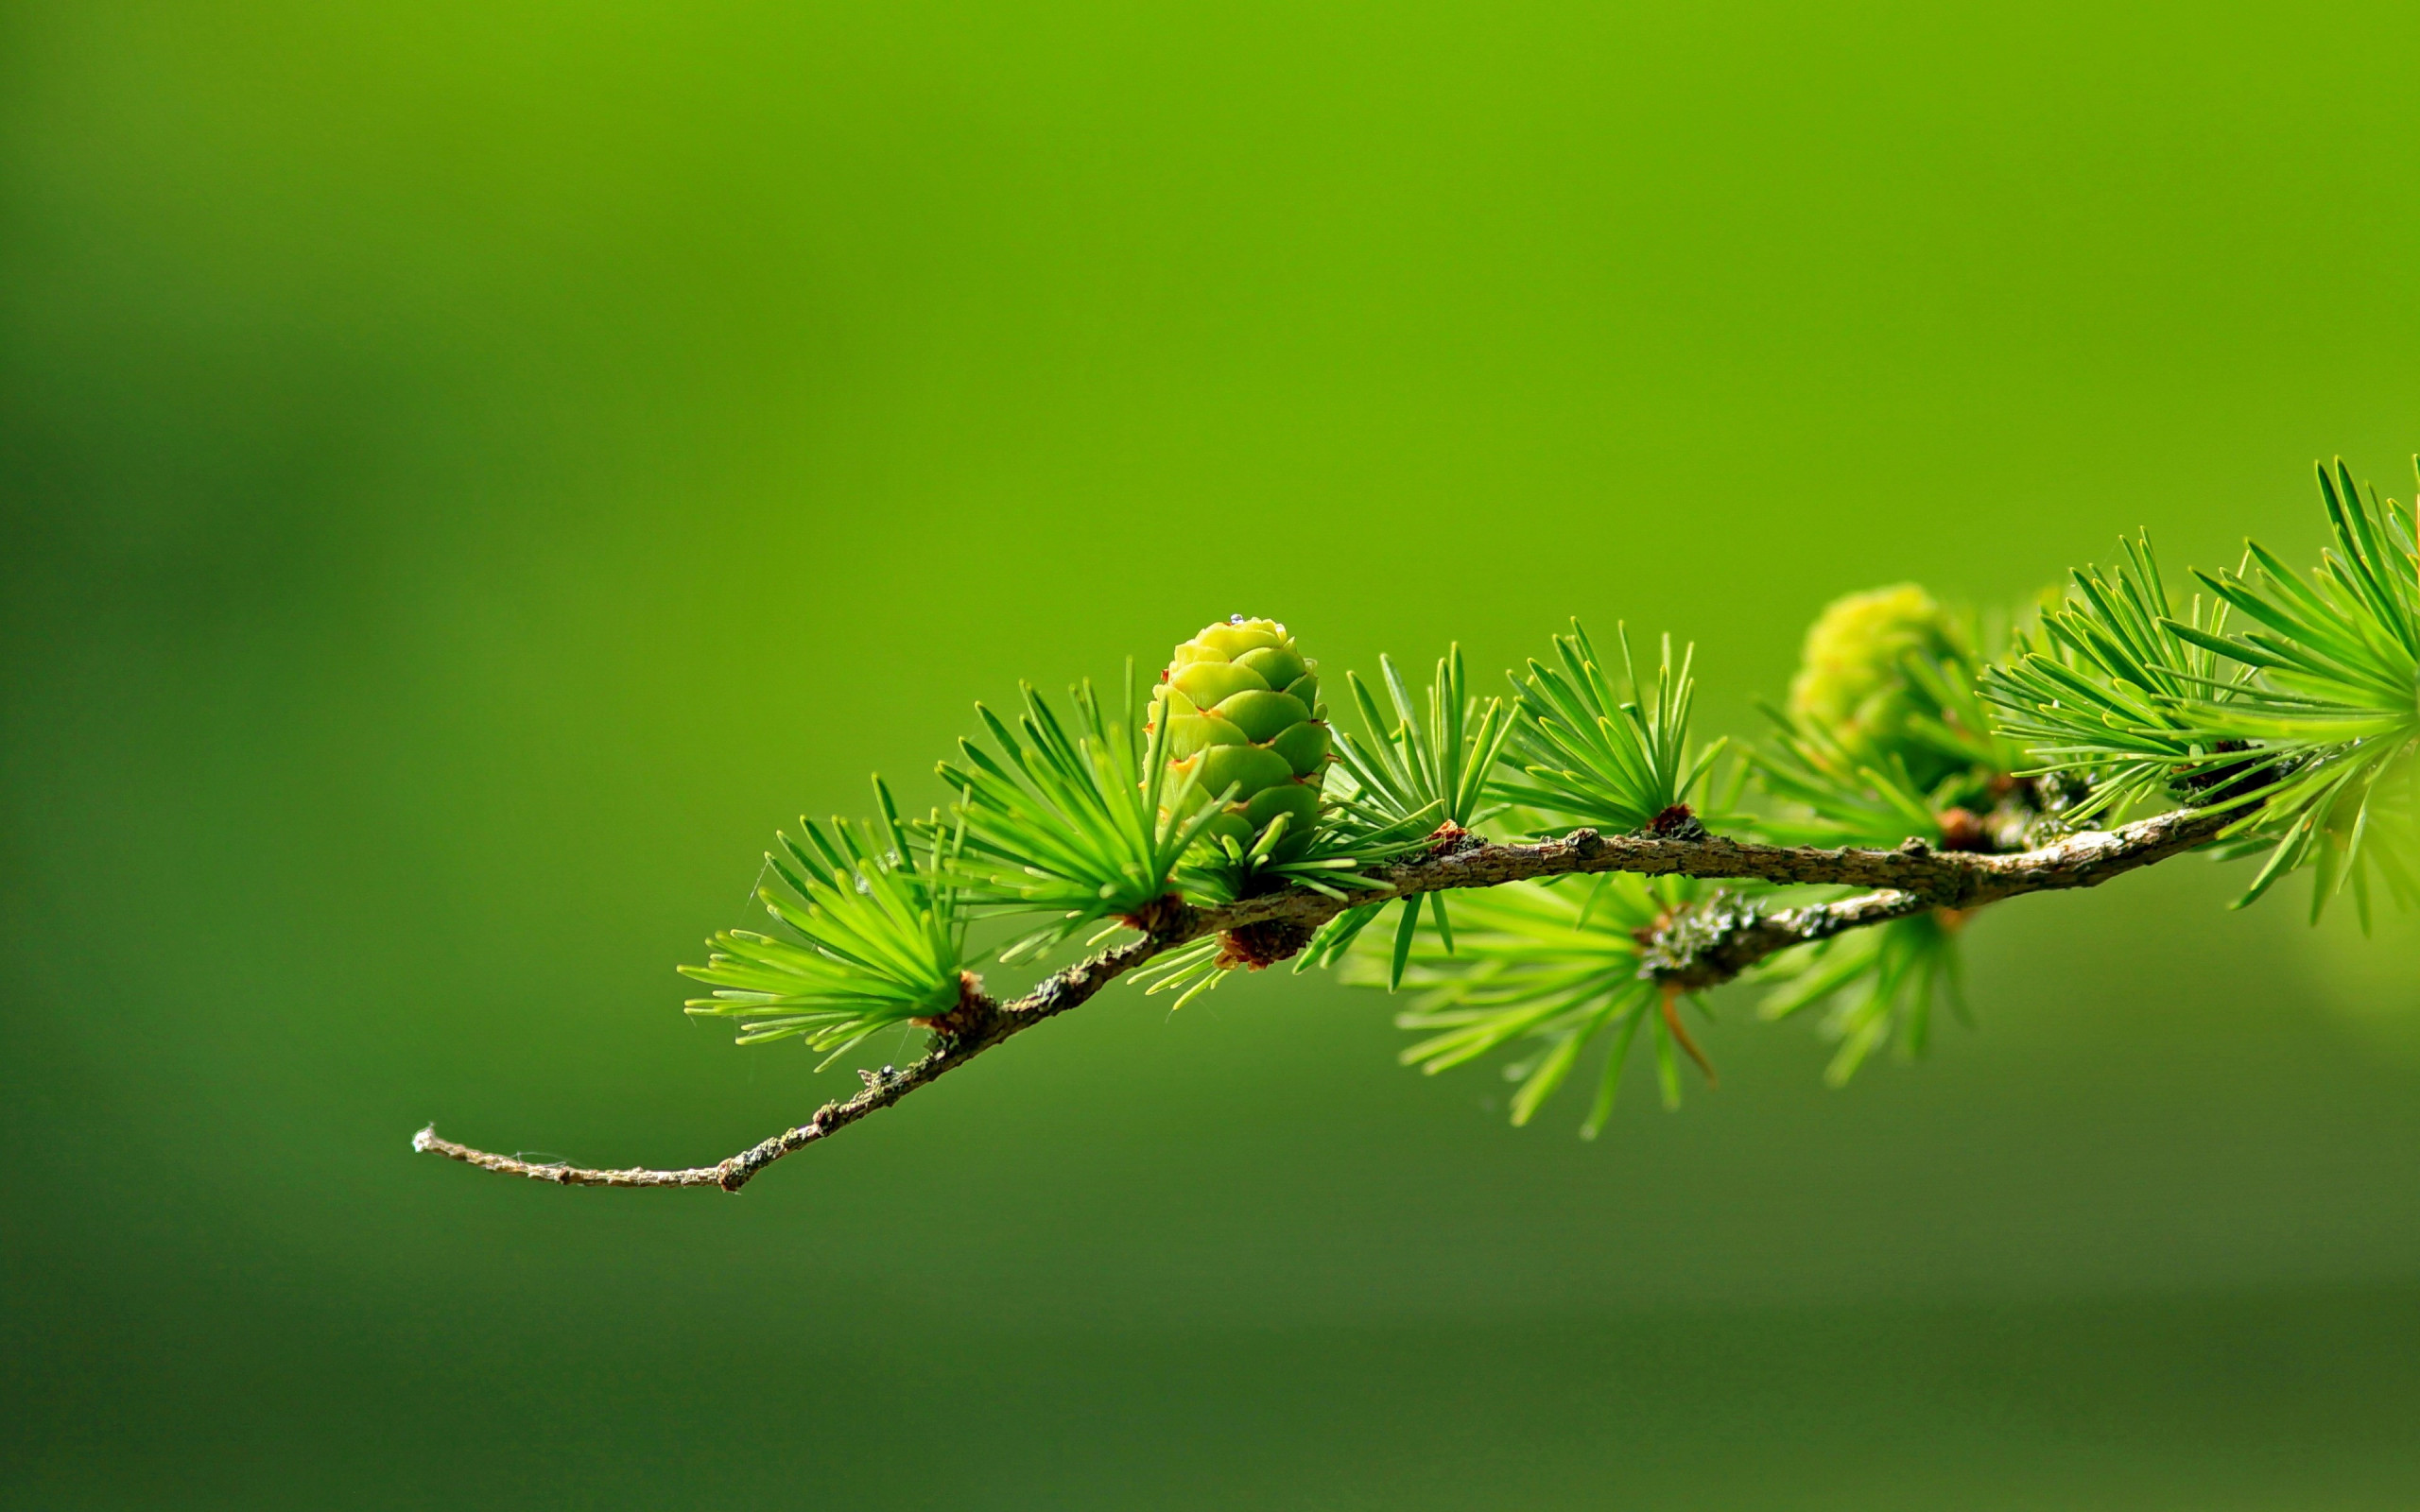 Conifer cone wallpaper 2560x1600